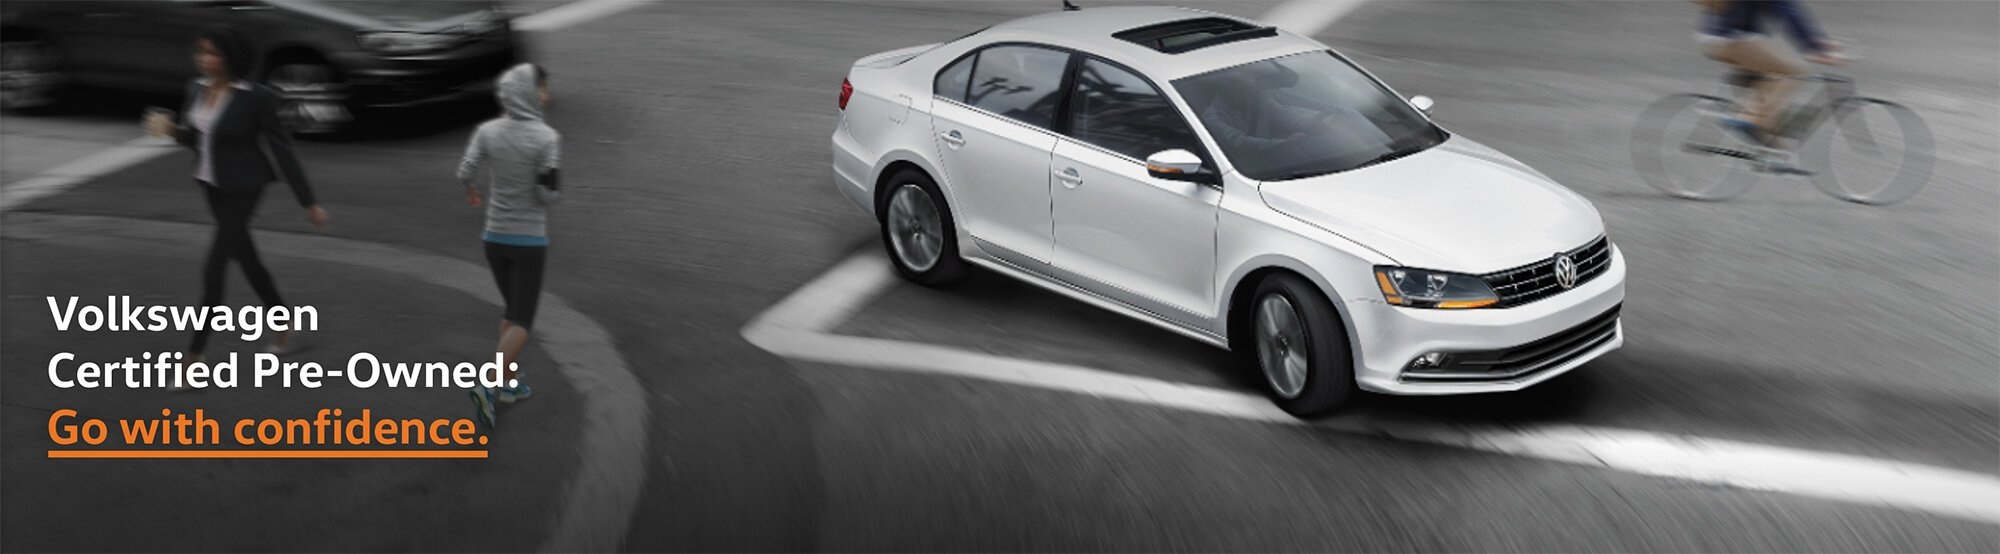 vw certified pre owned vehicle overview